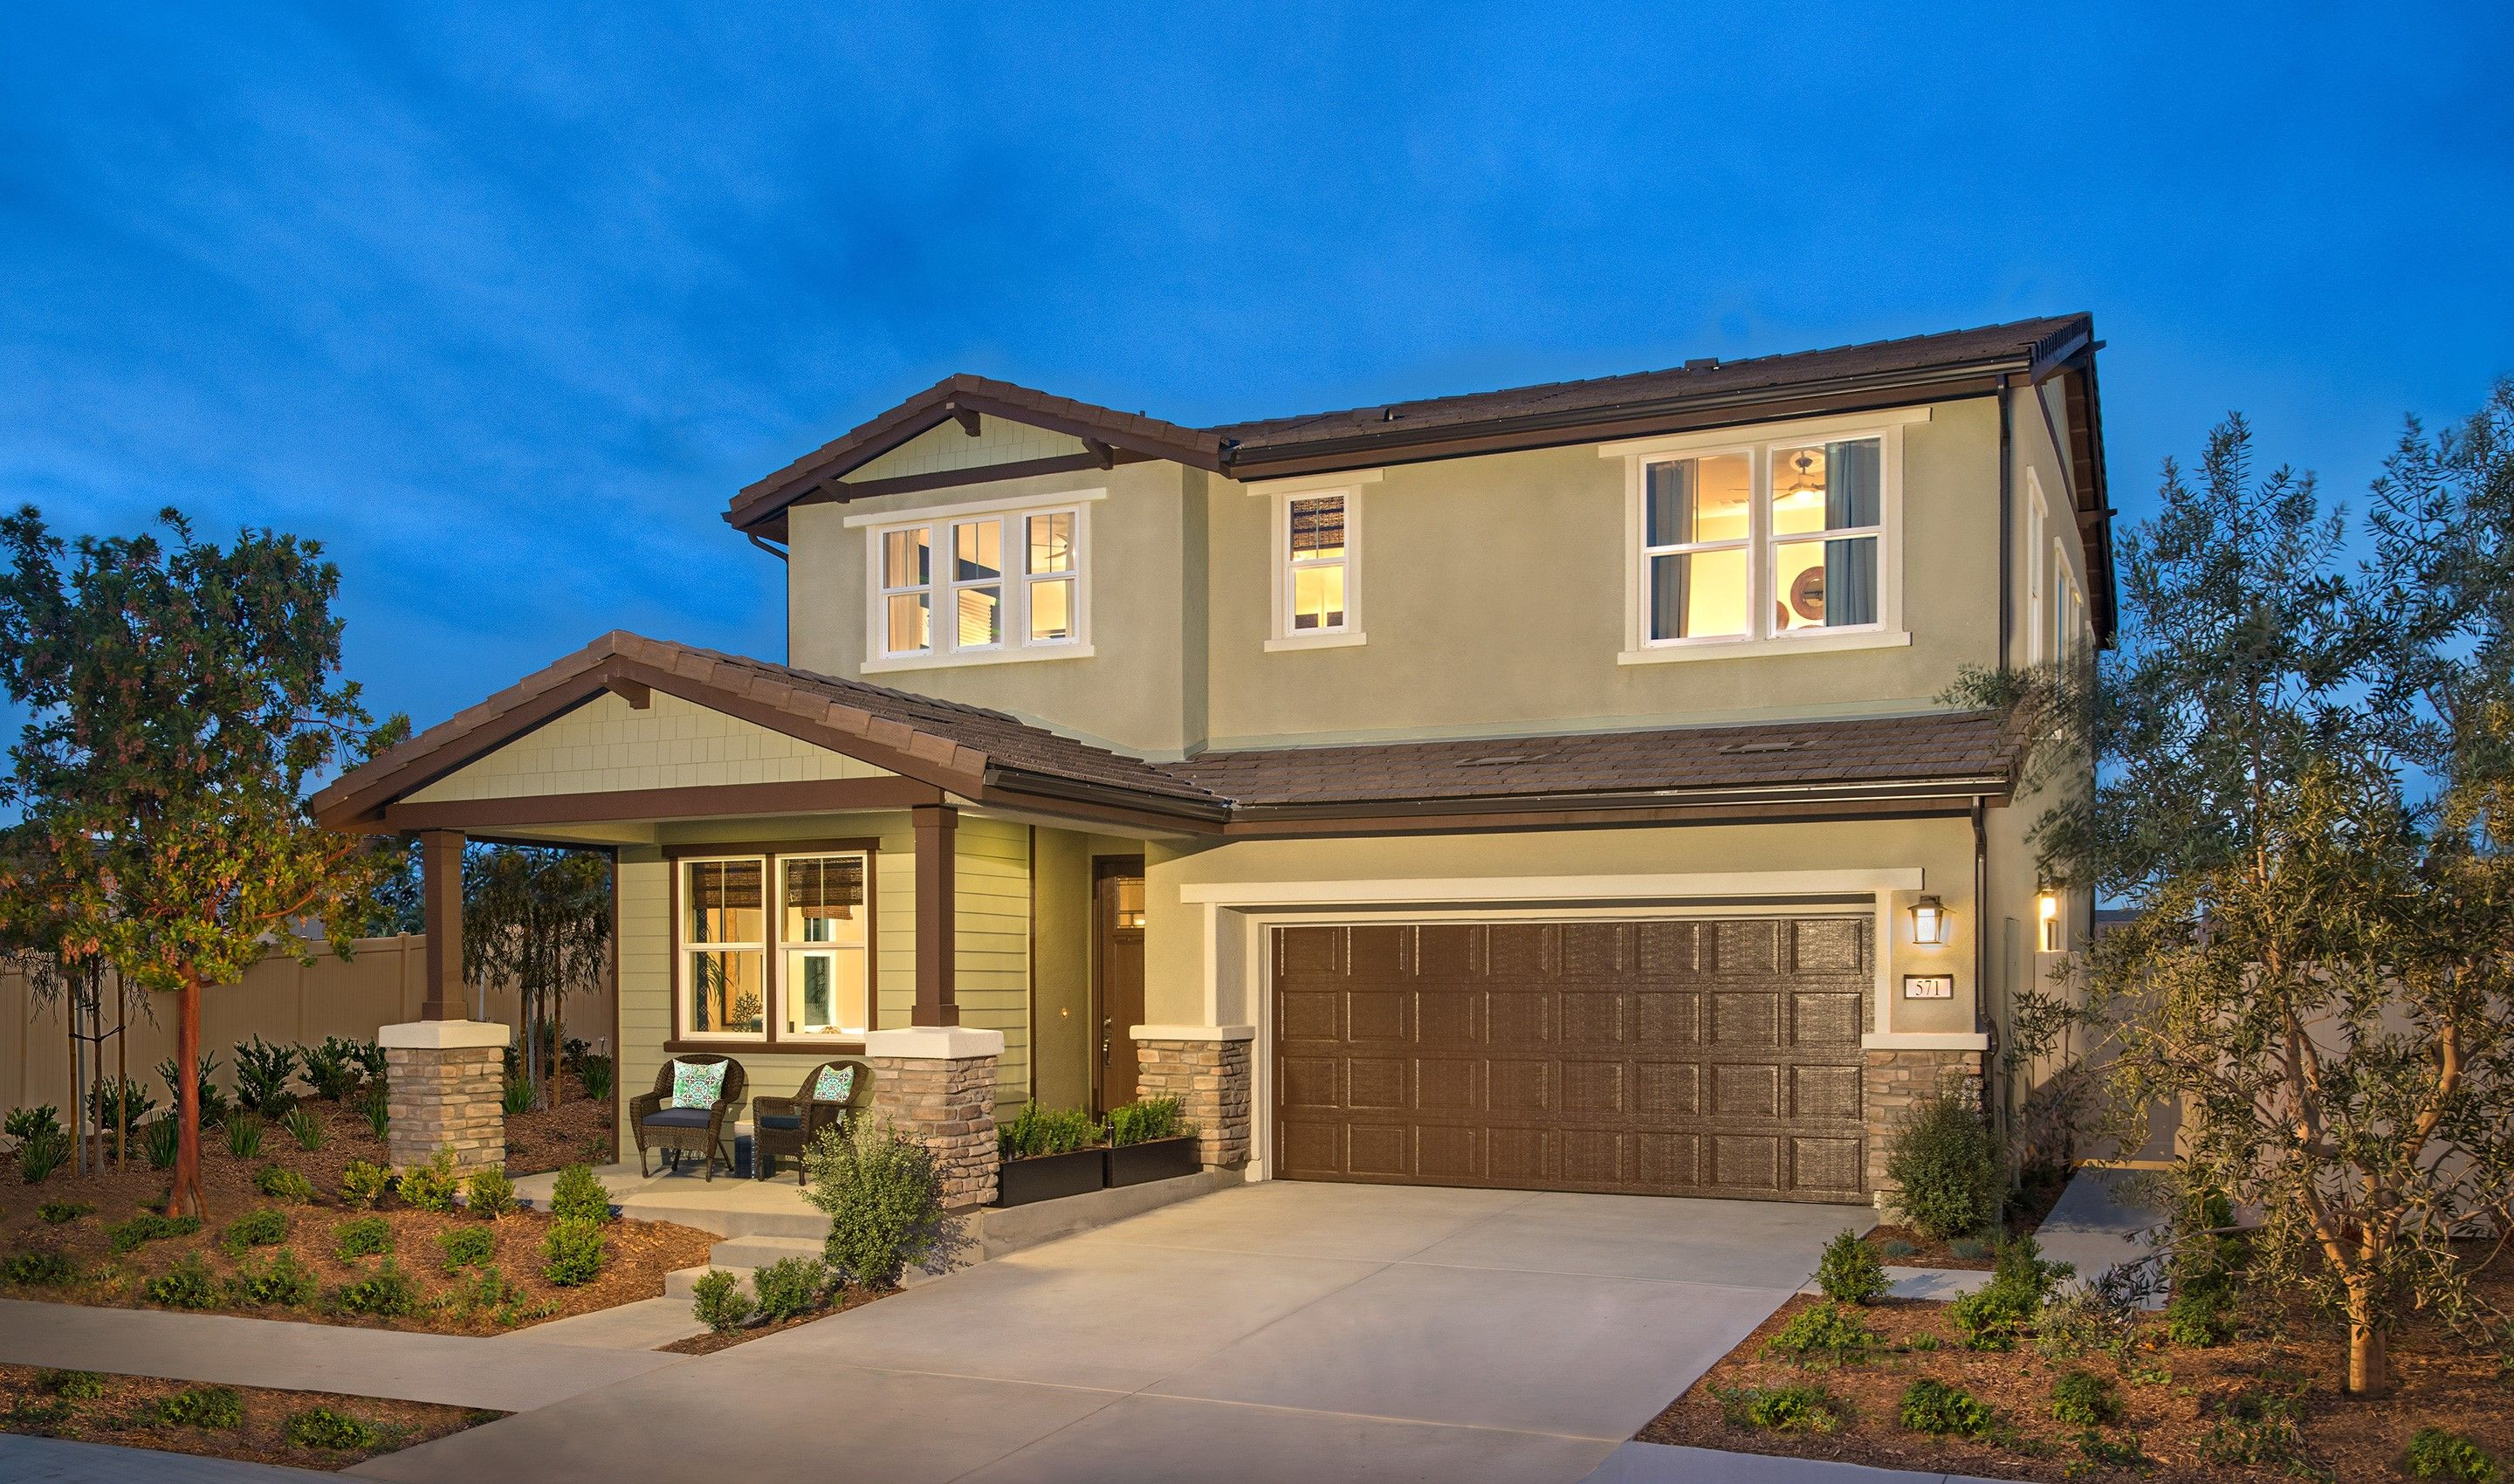 Single Family for Sale at Veranda At Riverpark - Driftwood Owens River Dr. And Oxnard Blvd. Oxnard, California 93036 United States